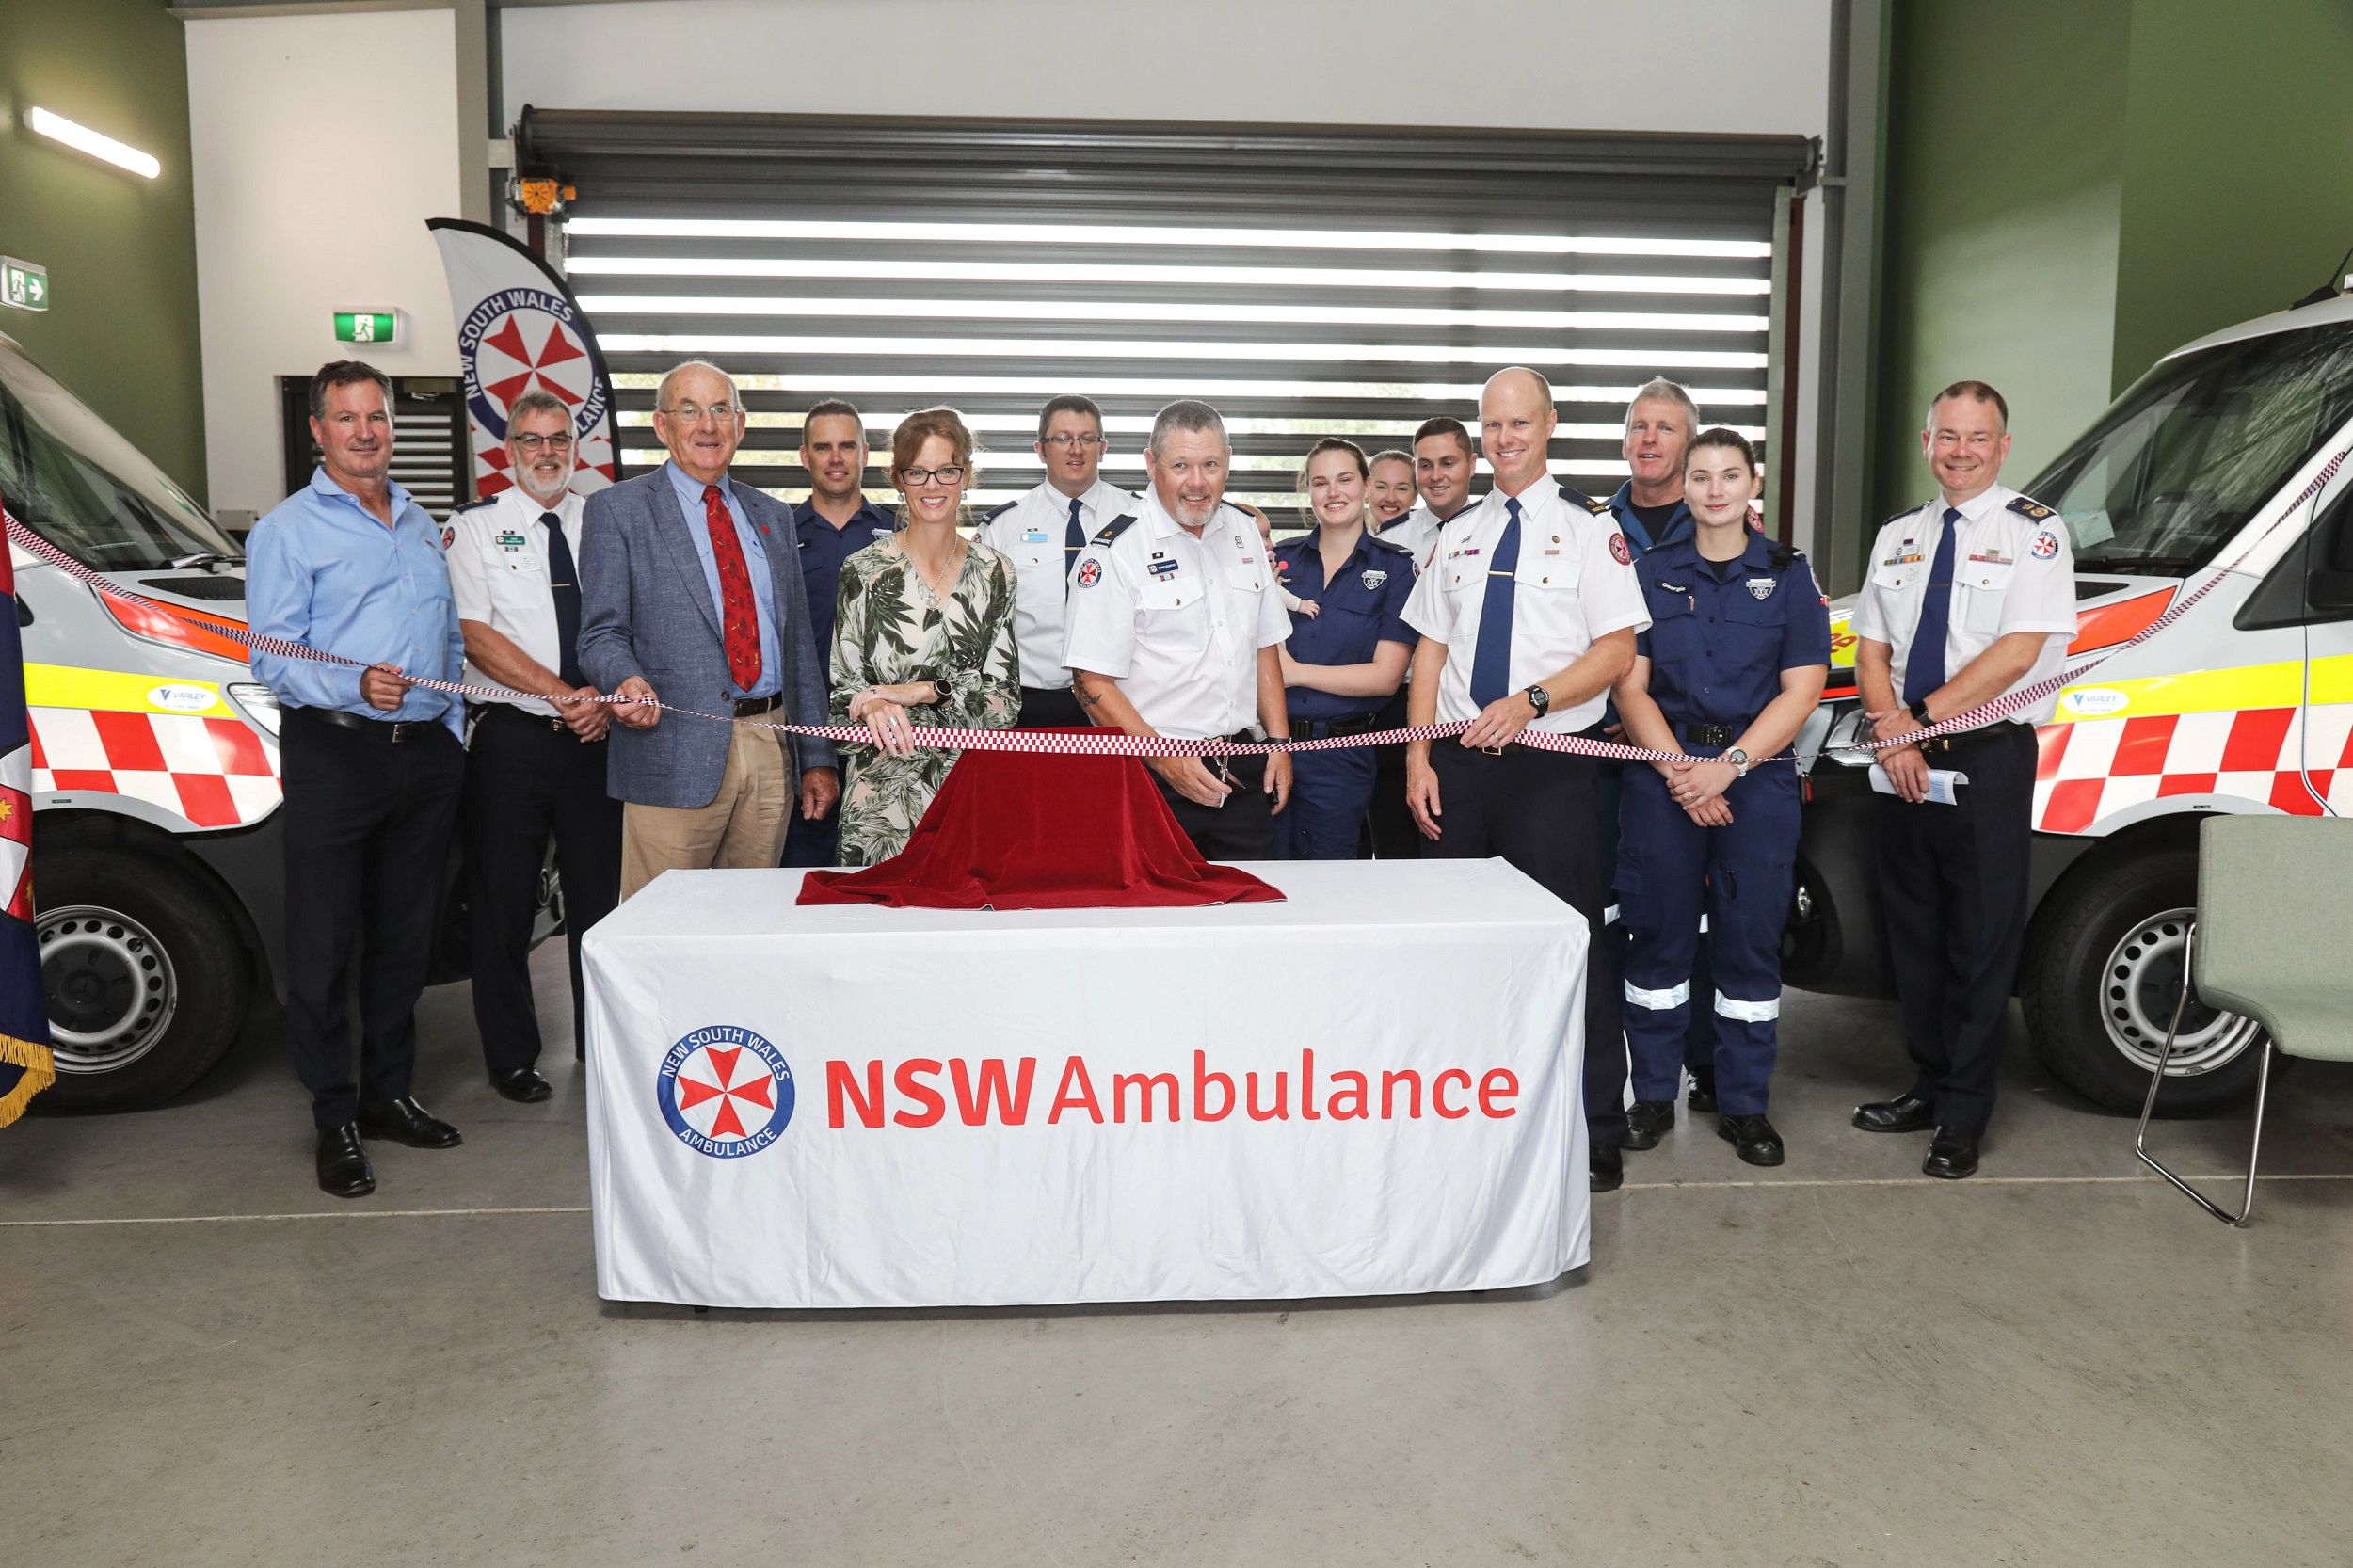 A group of paramedics and Steph Cooke cut a red and white ribbon.